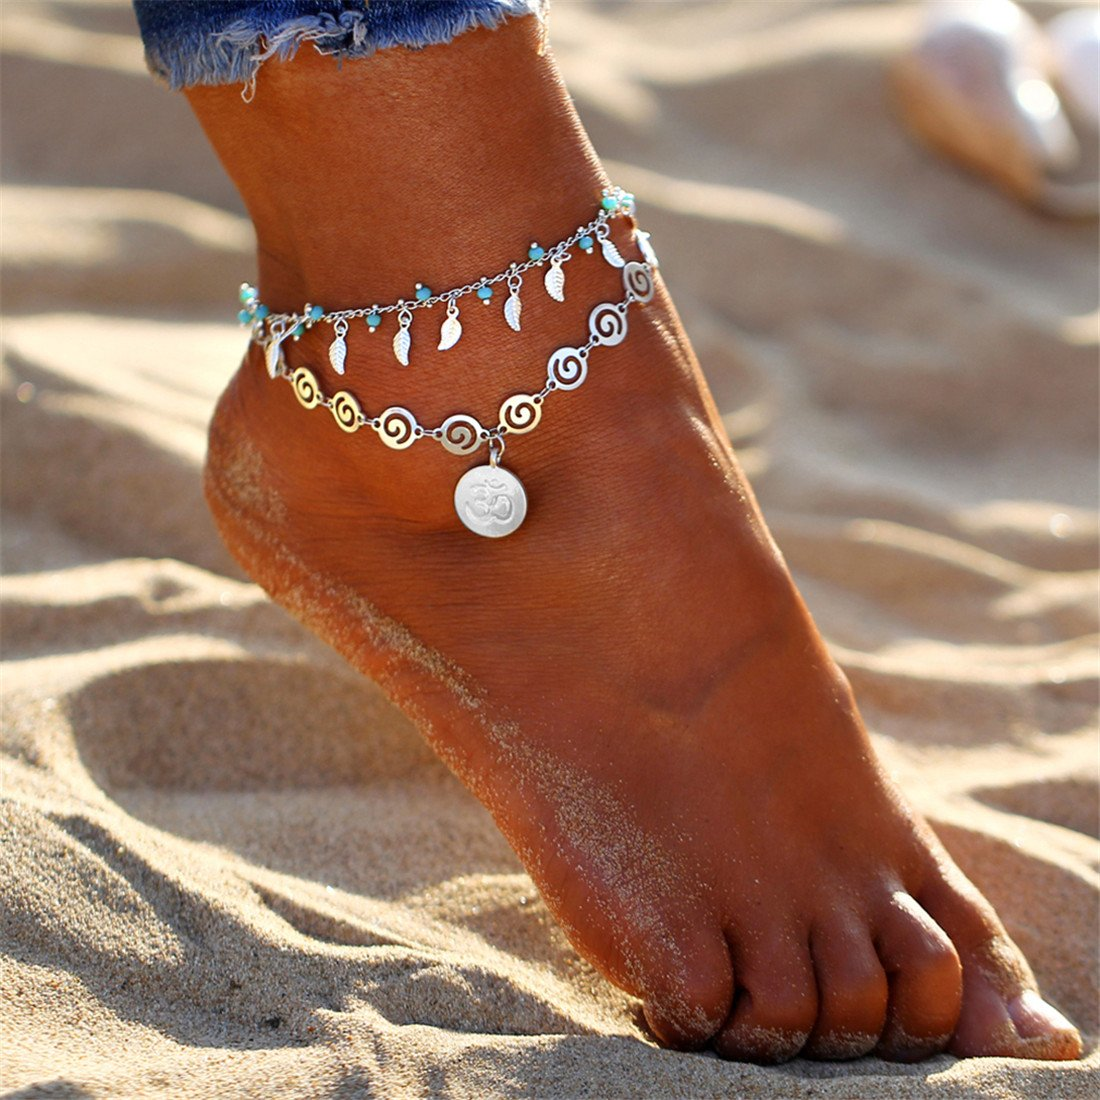 Yesiidor Bohemian Yoga Anklet With Turquoise Leaves Tassels Pendant Vintage Retro Bead Anklet Beach Sandal Barefoot Anklet Bracelet Foot Jewelry